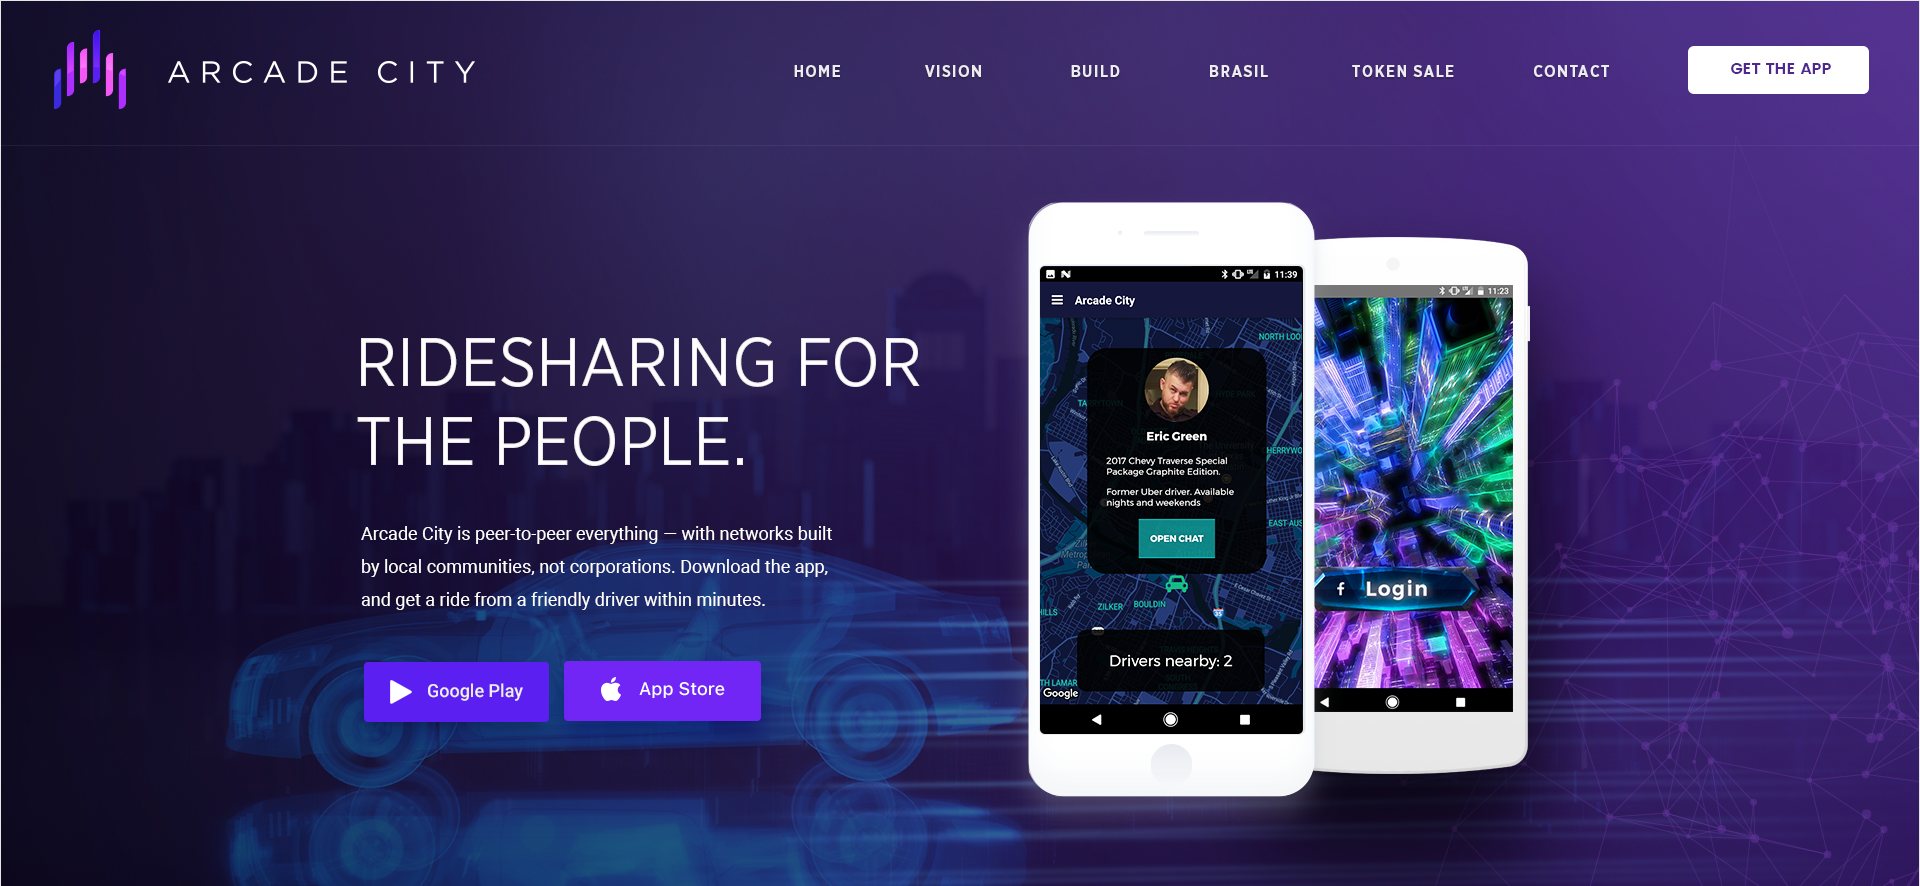 Web design for a cryptocurrency ridesharing app